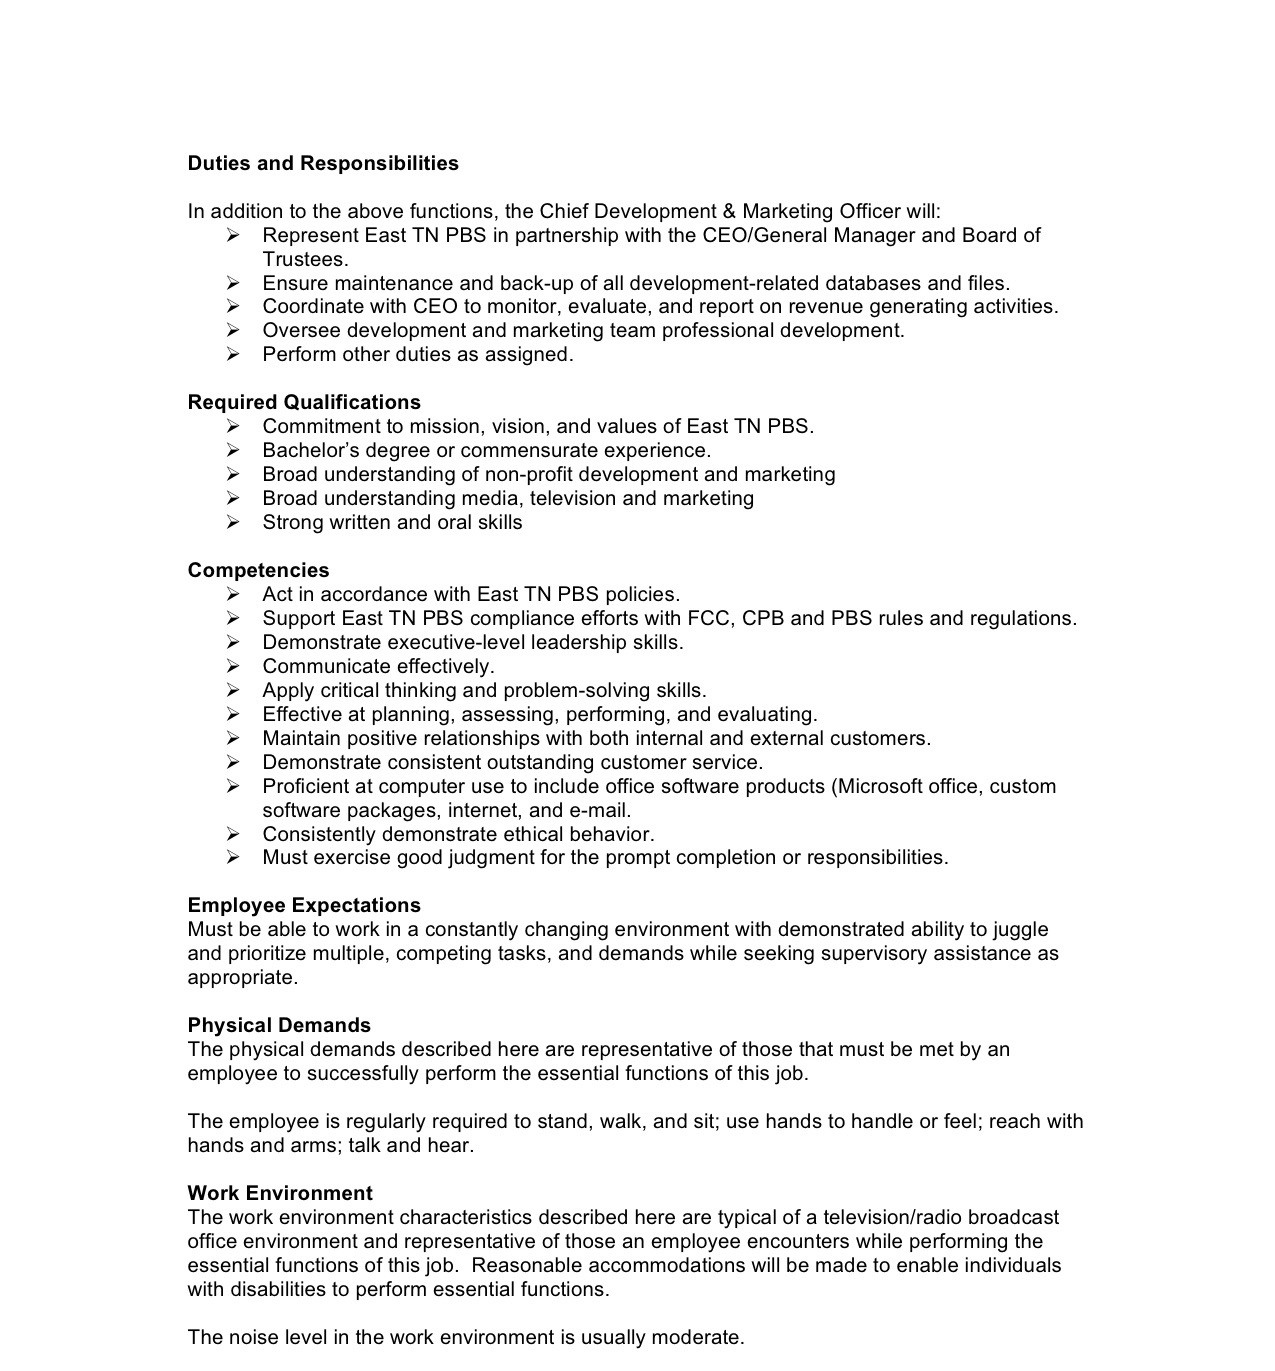 Duties and Responsibilities Page 2.jpg